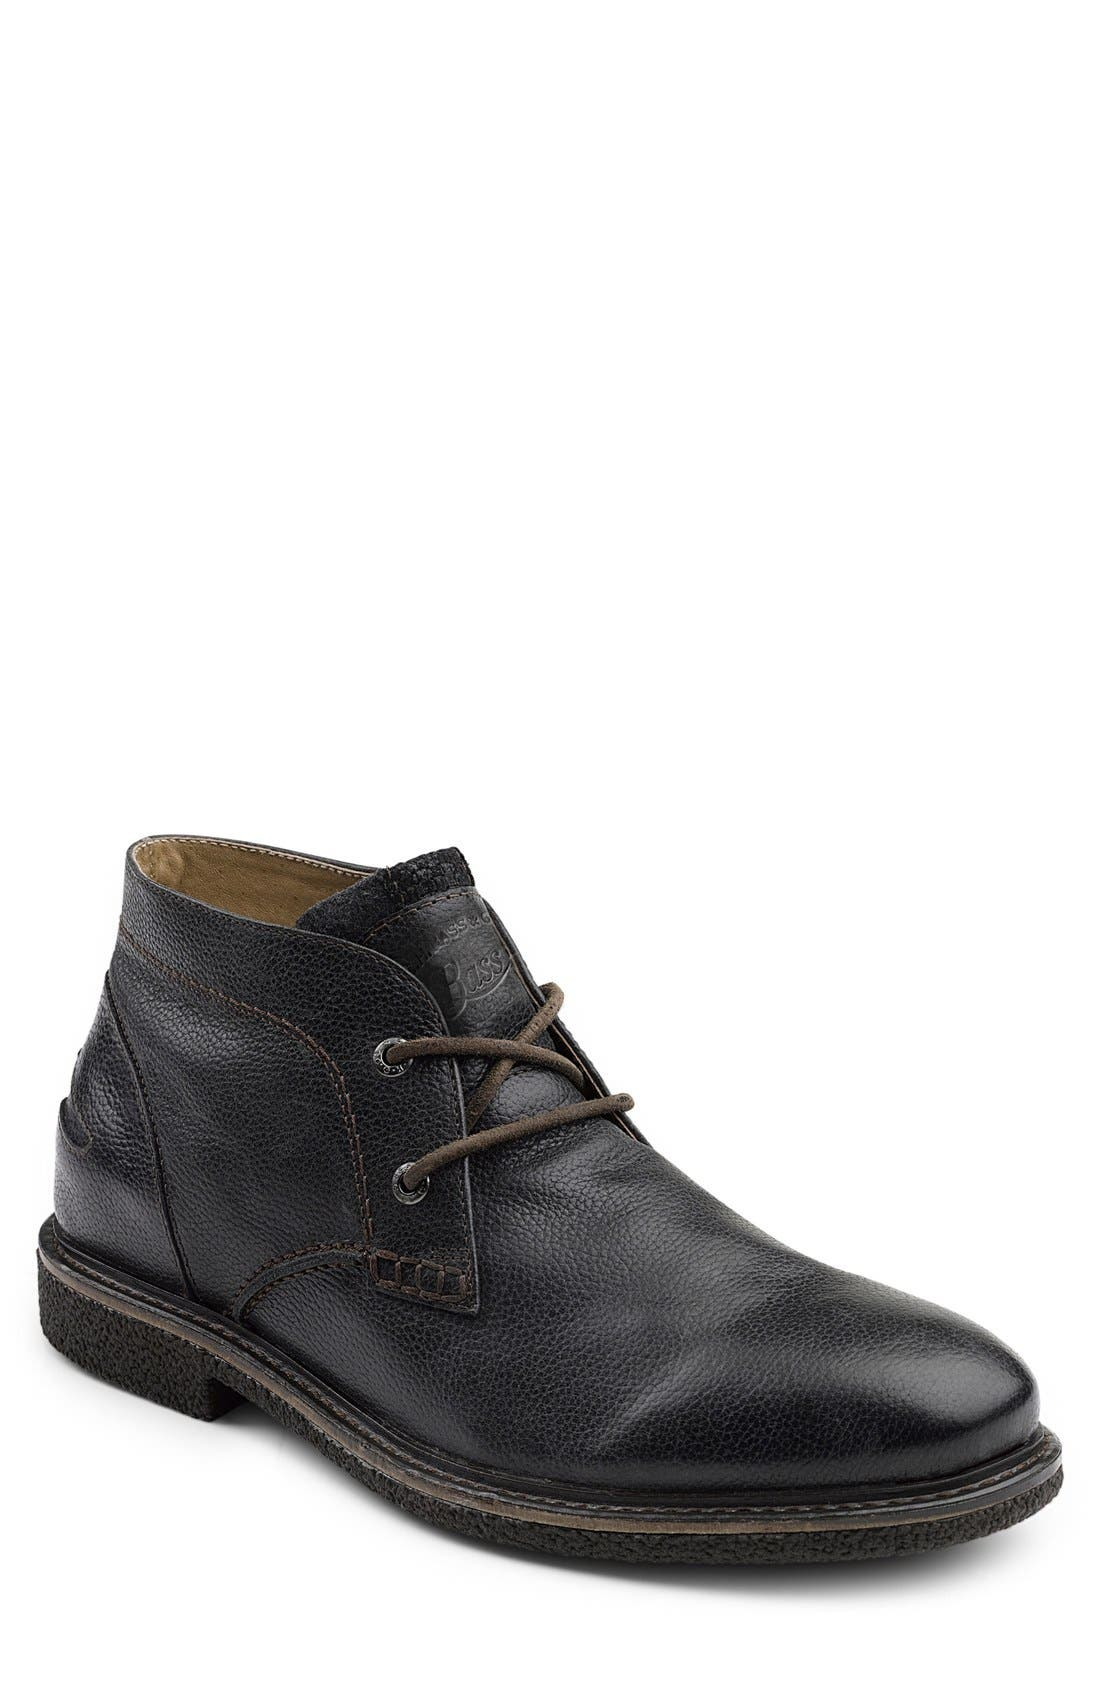 'Bennett' Chukka Boot,                             Main thumbnail 1, color,                             BLACK